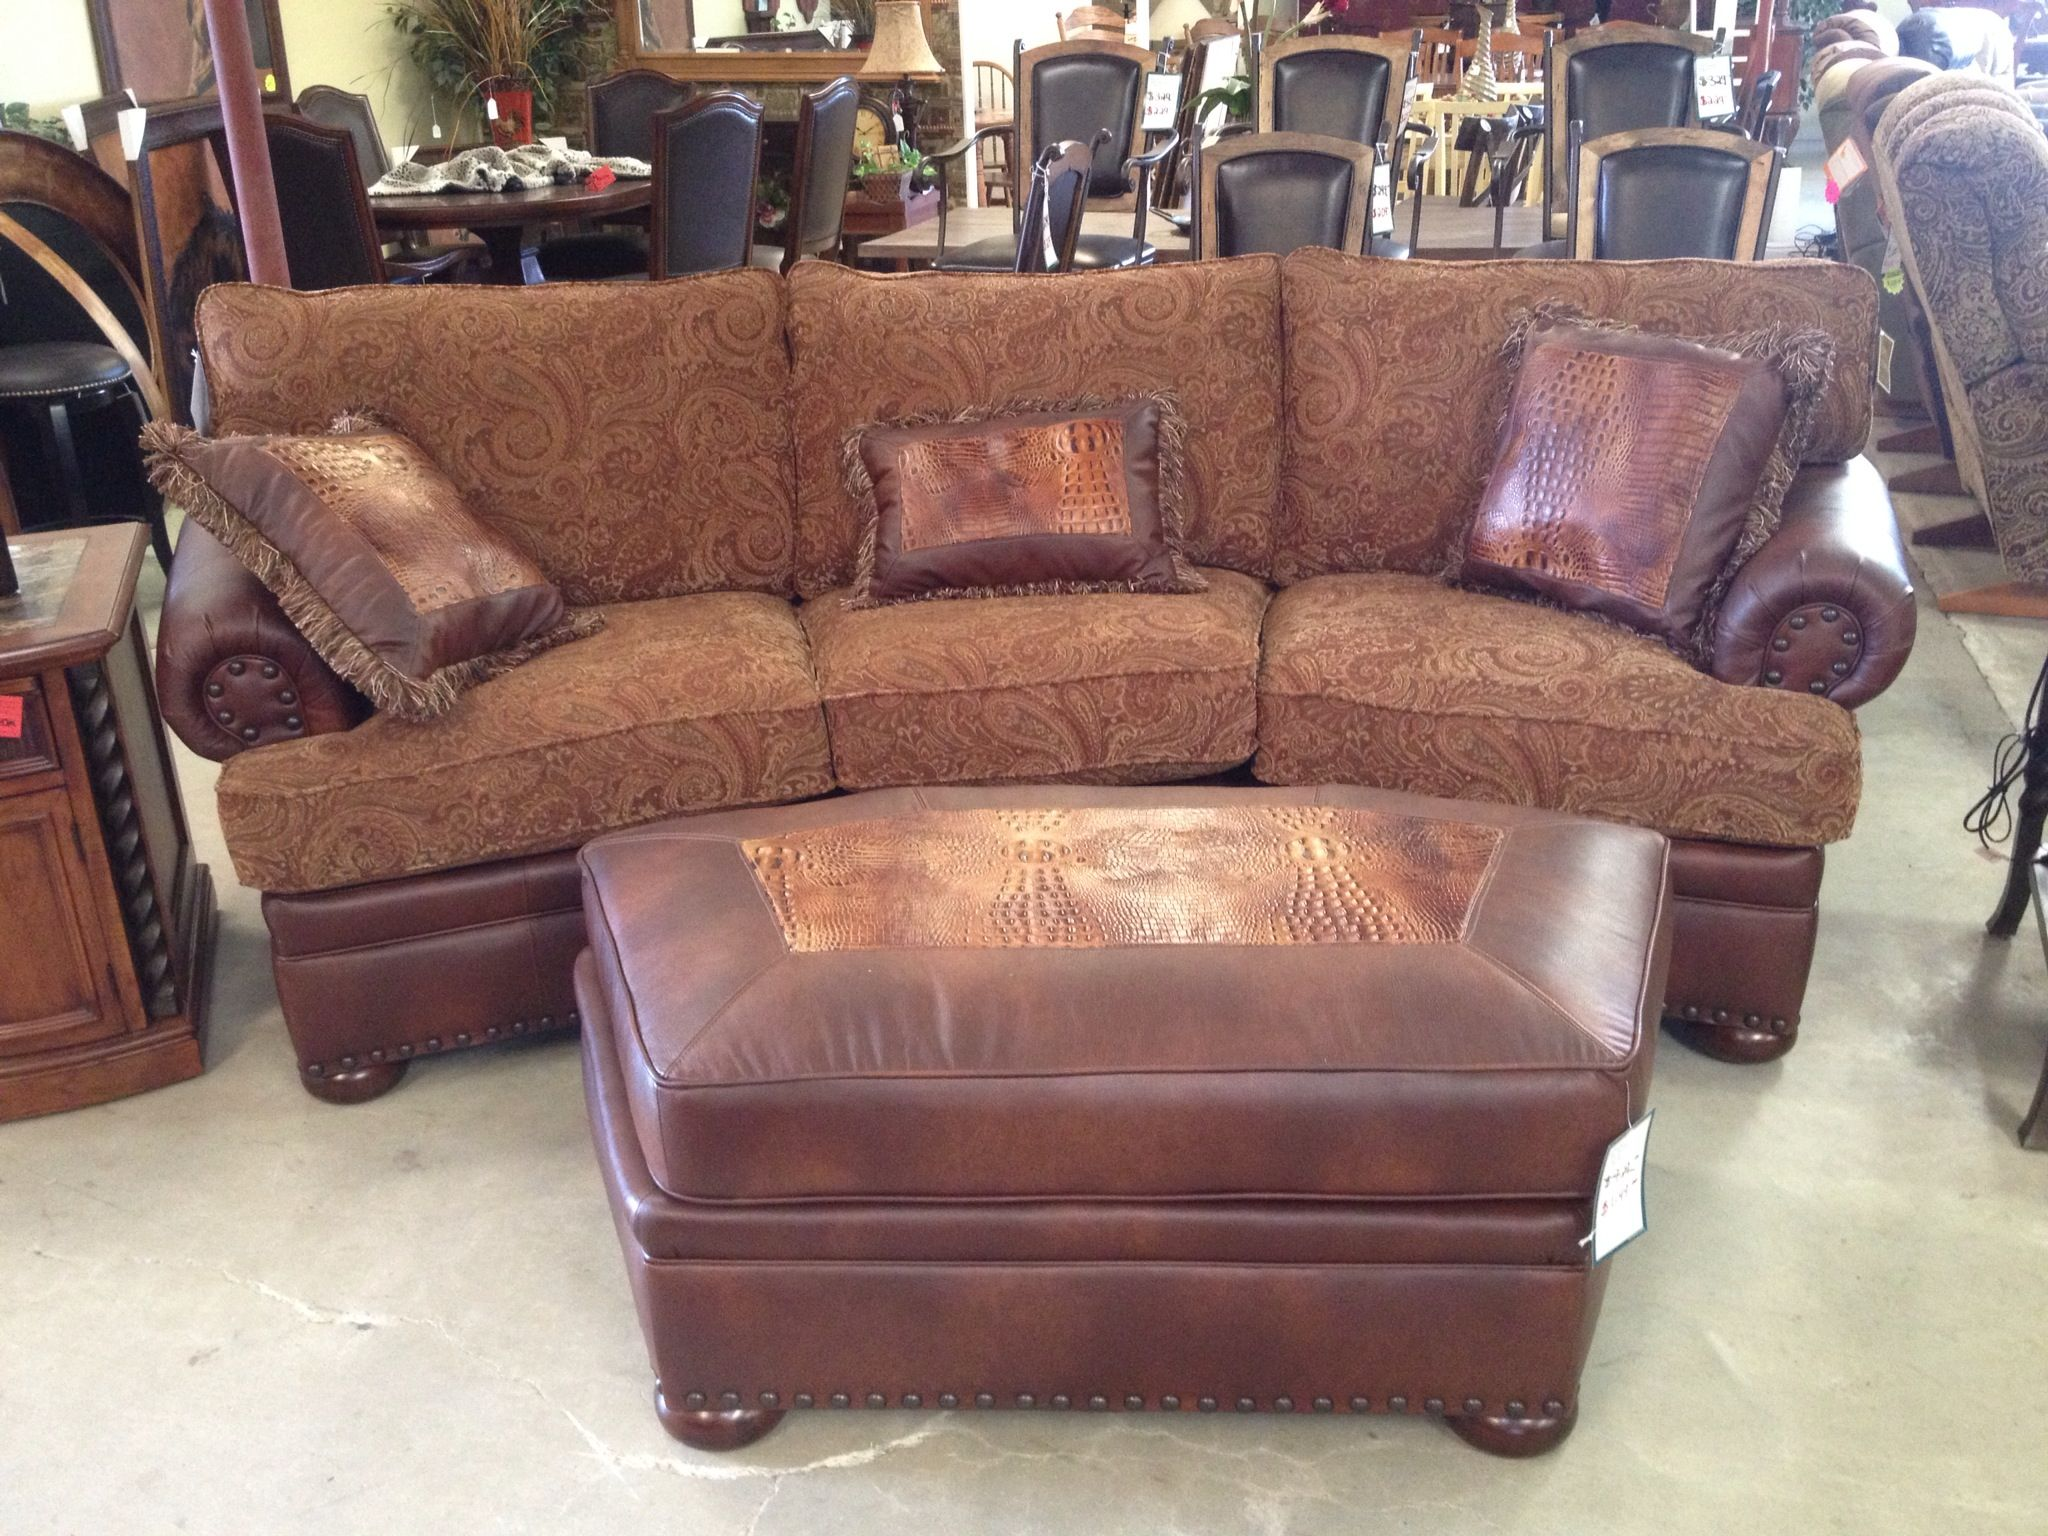 Mayo Furniture Conversational Couch From Denio 39 S In Cameron Texas Furniture Pinterest